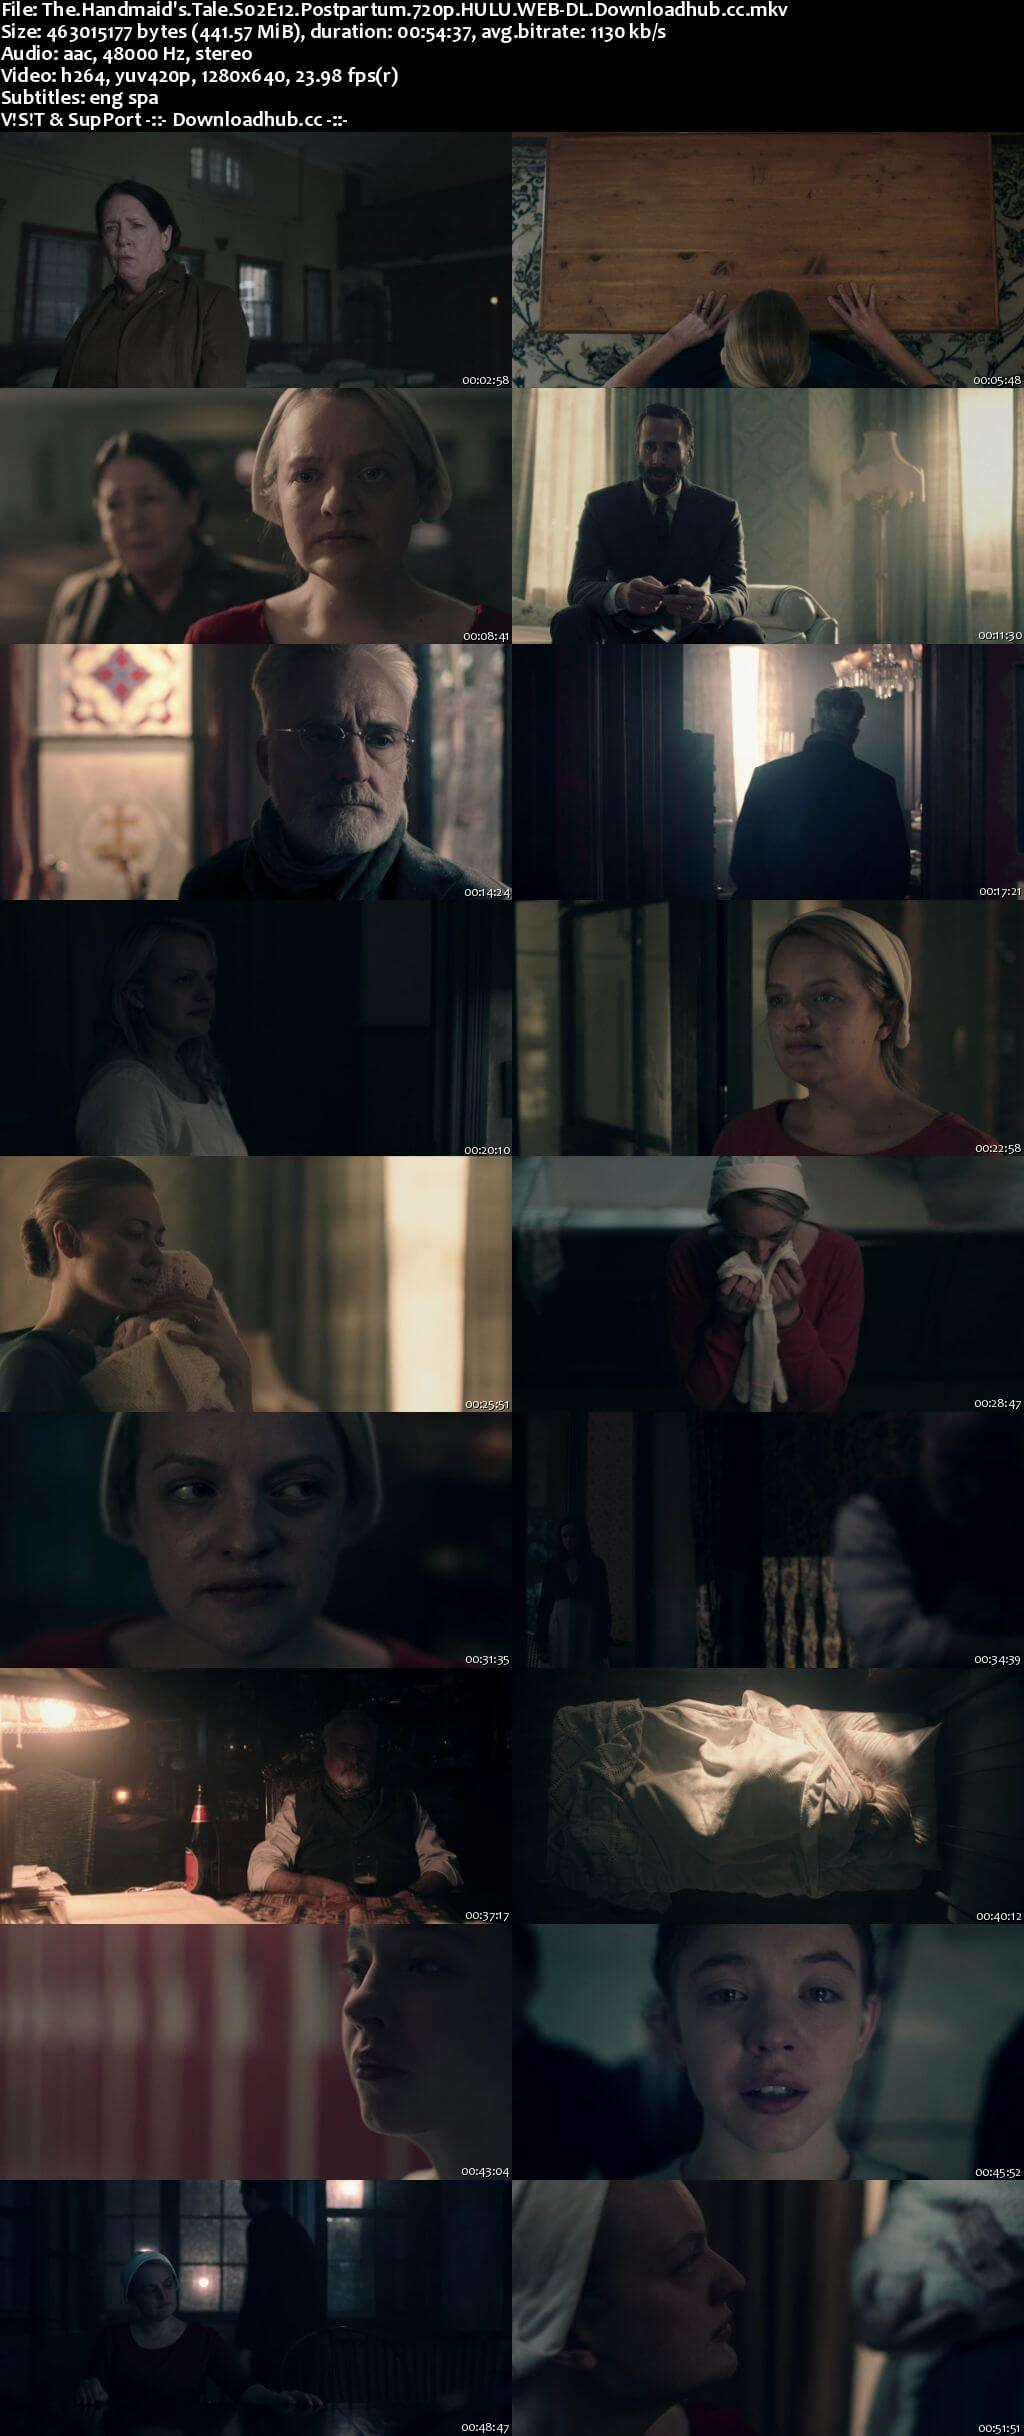 The Handmaids Tale S02E12 440MB HULU WEB-DL 720p x264 ESubs